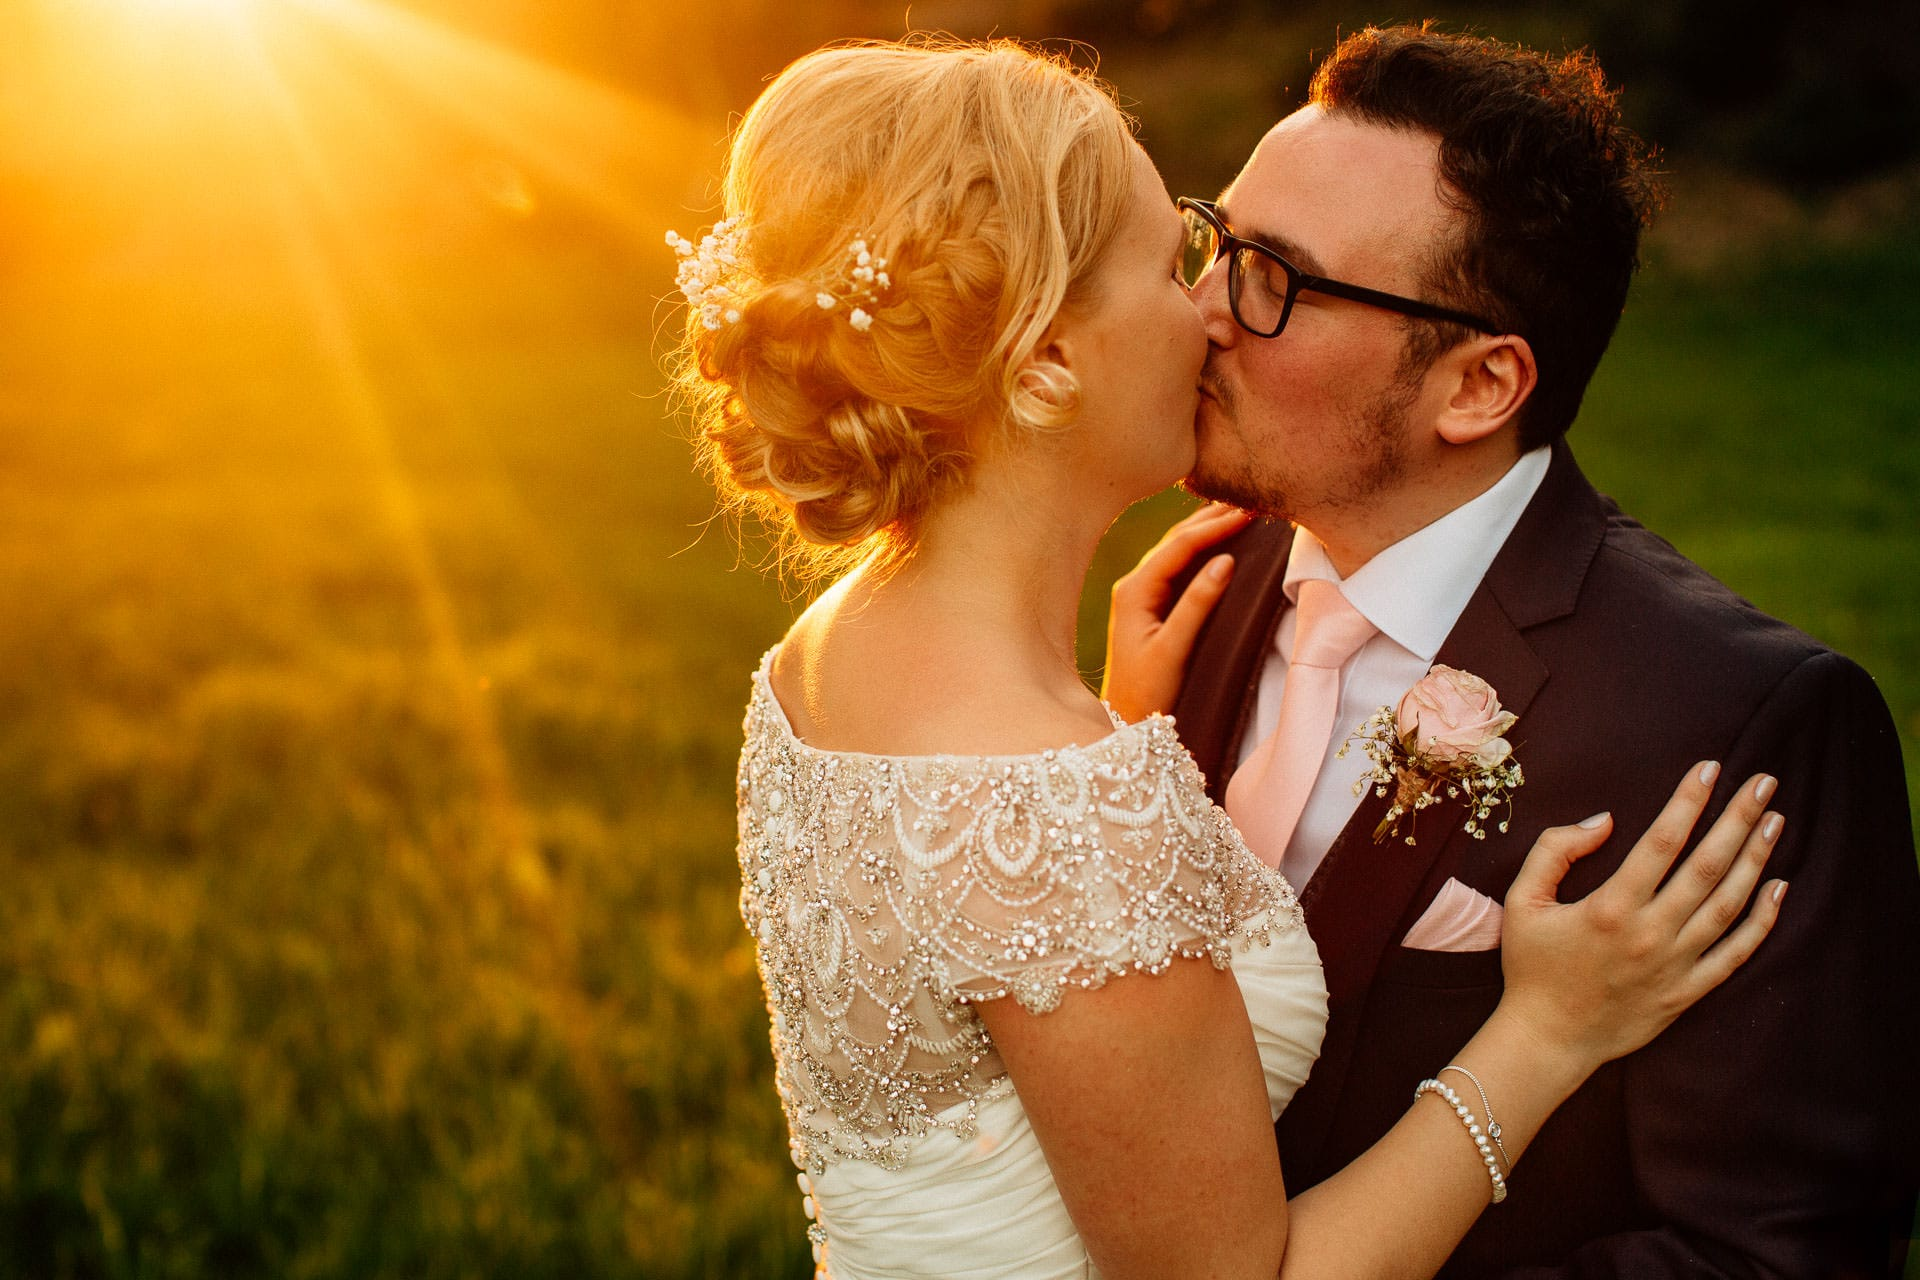 The Wild Boar Wedding Photography - EM - couple kissing in gorgeous golden light